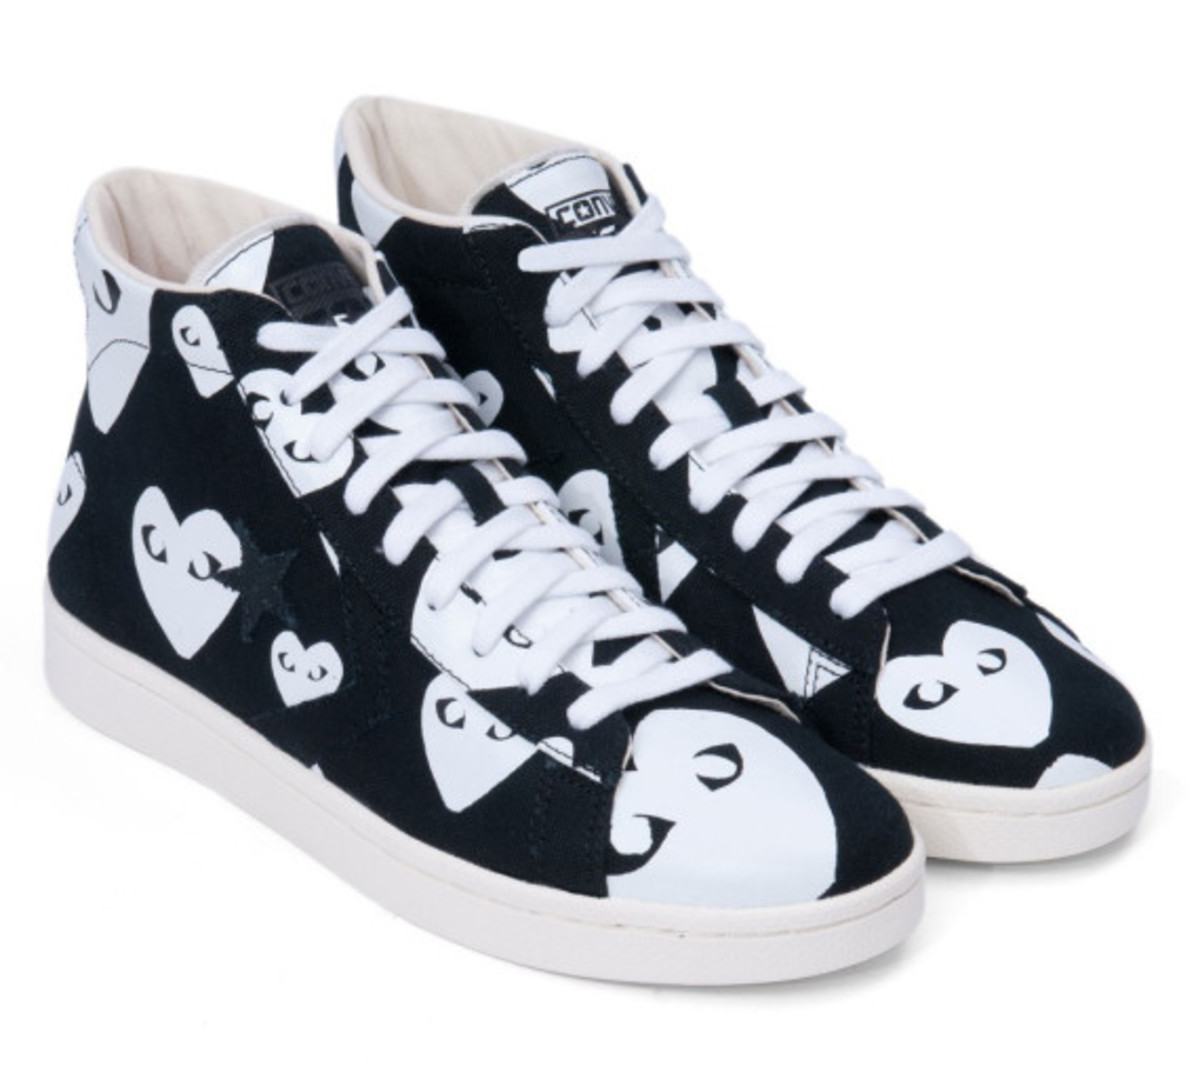 comme-des-garcons-play-converse-pro-leather-collection-05